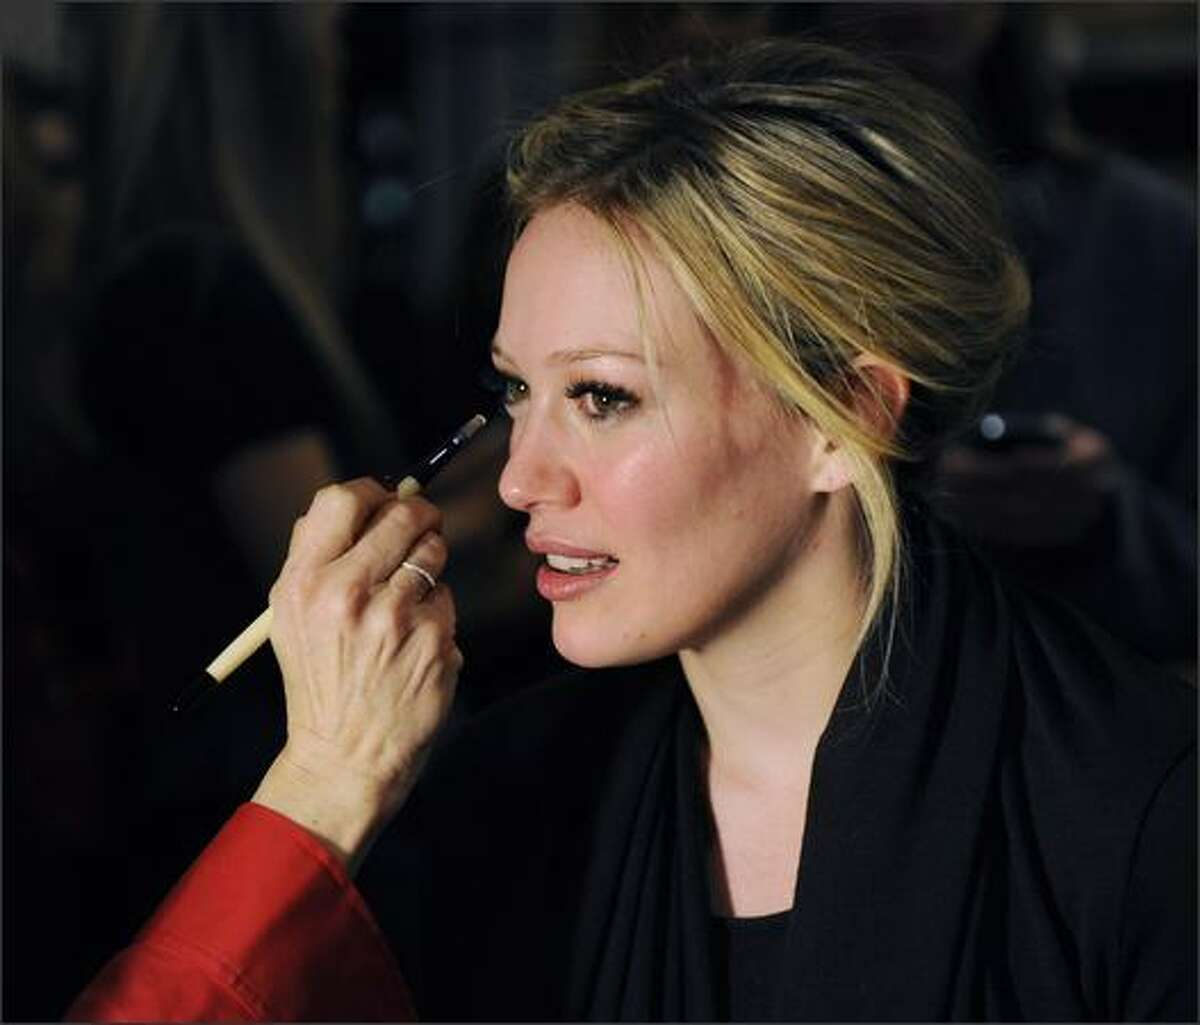 Singer Hilary Duff gets ready backstage before the Heart Truth Red Dress Collection 2009 Fashion Show at the Mercedes Benz Fashion Week in New York.